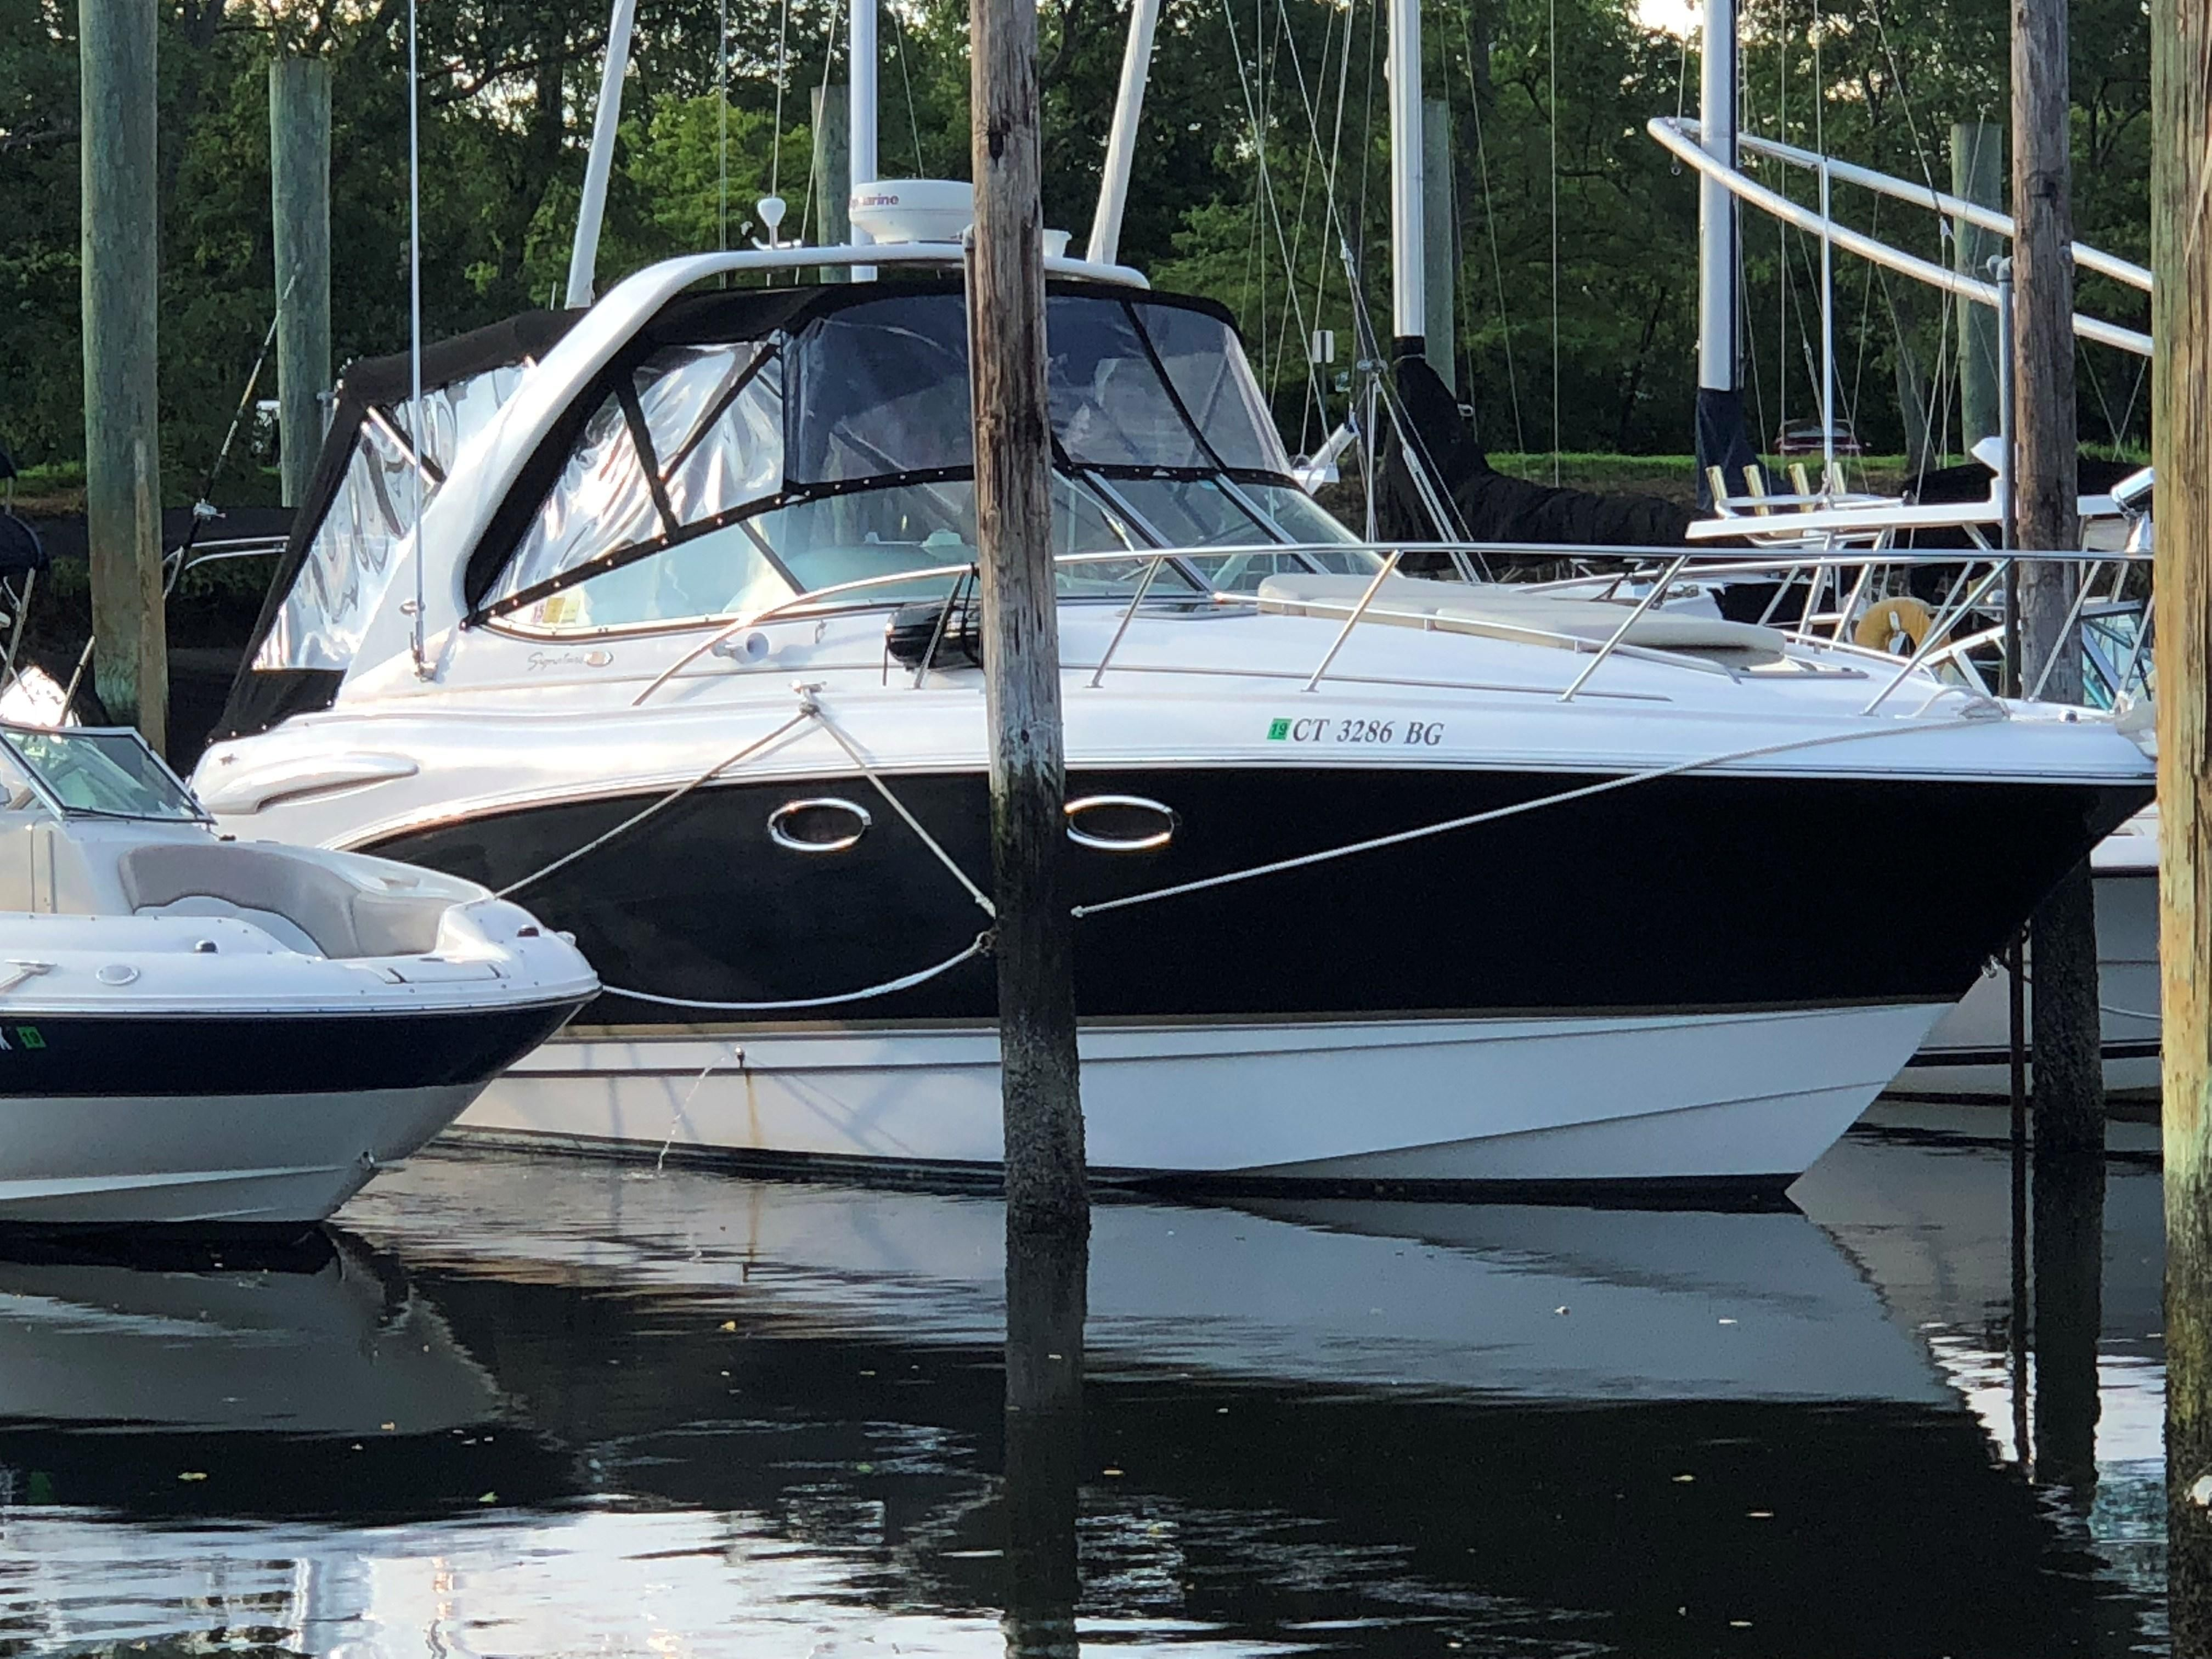 Volvo Dealers In Ct >> 2004 Chaparral Signature 310 Power Boat For Sale - www ...